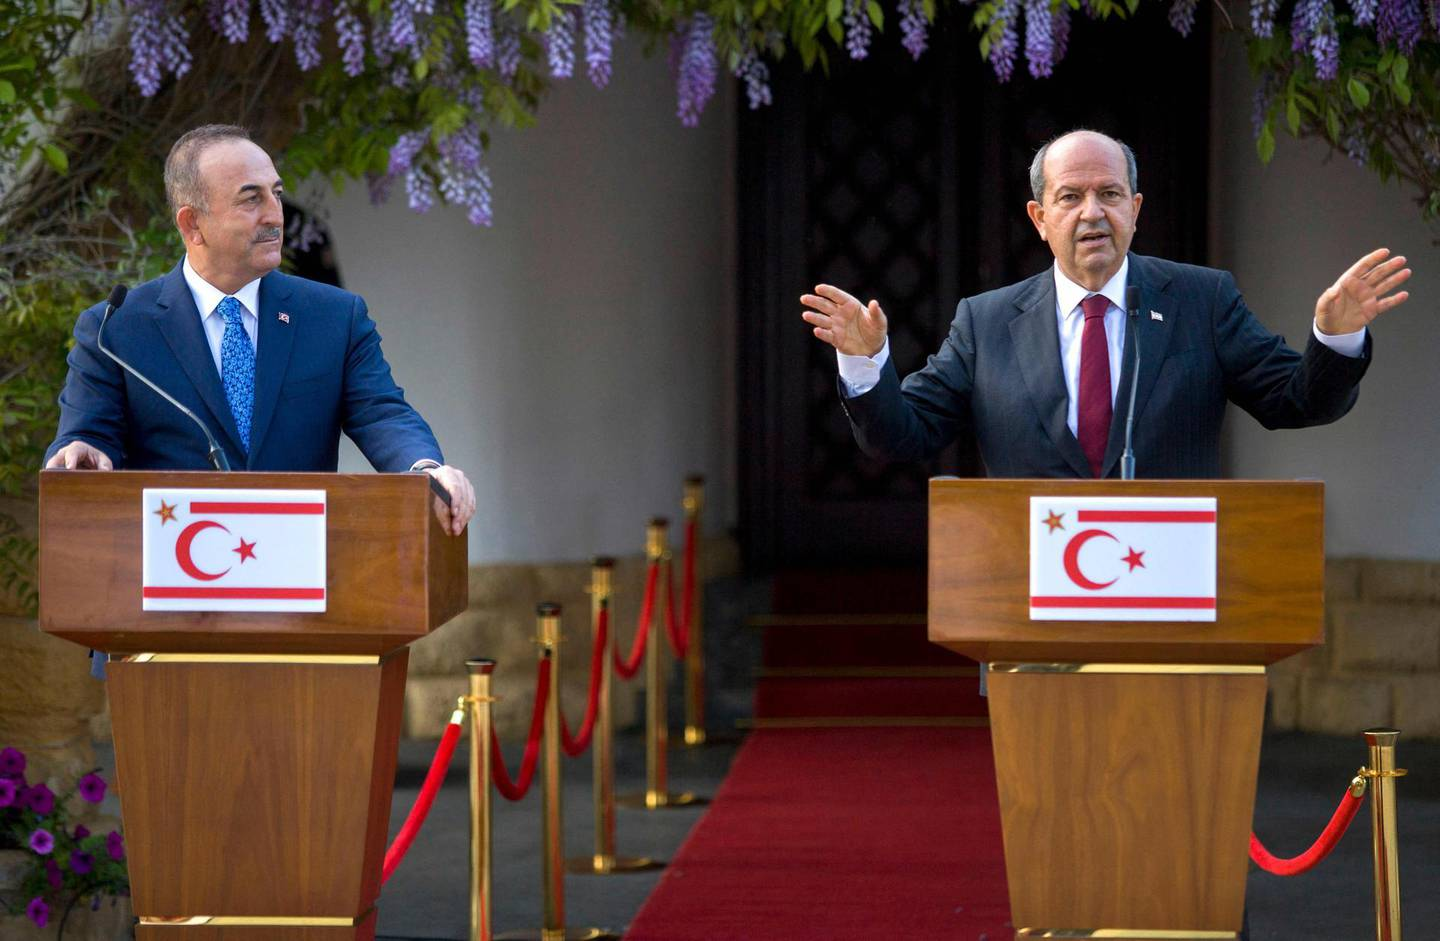 Turkish-Cypriot leader Ersin Tatar (R) speaks during a joint press conference with Turkey's Foreign Minister Mevlut Cavusoglu in the northern part of Cyprus' divided capital Nicosia, under control of the self-proclaimed Turkish Republic of North Cyprus (TRNC), on April 16, 2021. / AFP / Birol BEBEK